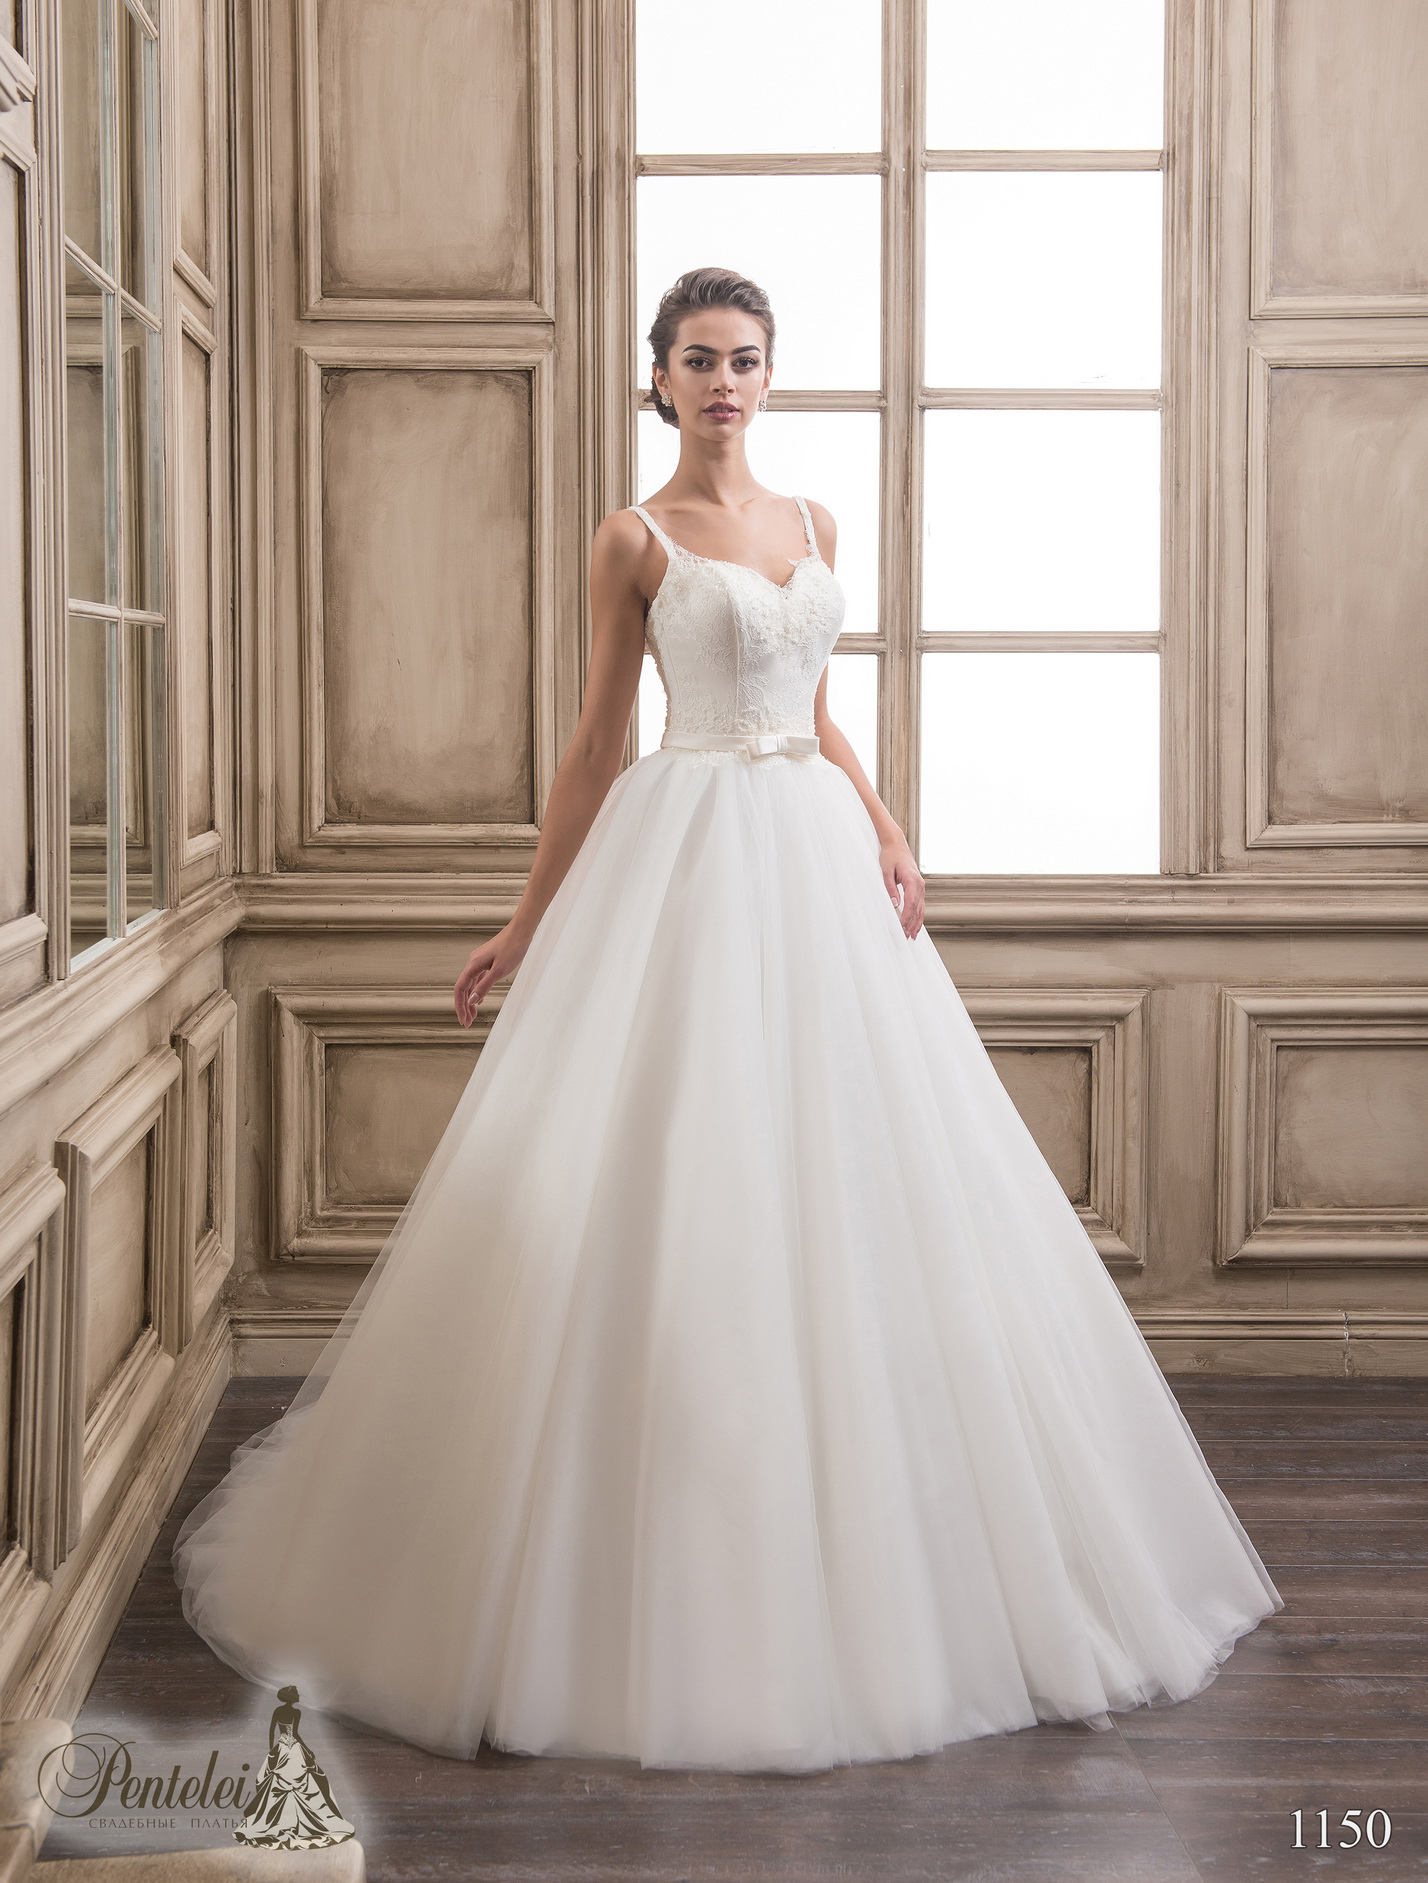 1150 | Buy wedding dresses wholesale from Pentelei